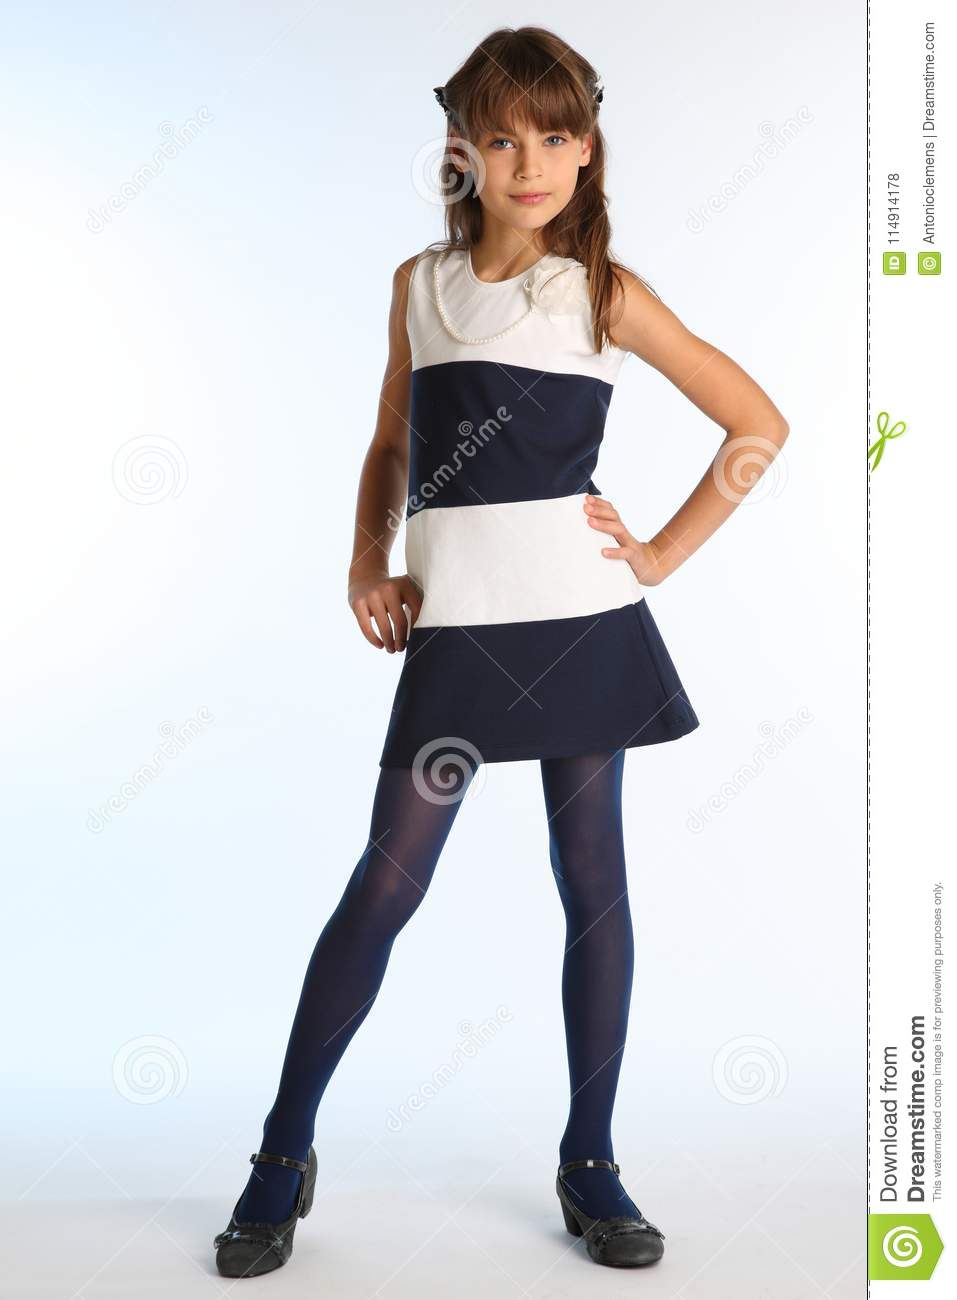 Speaking. very young girl in pantyhose photos opinion